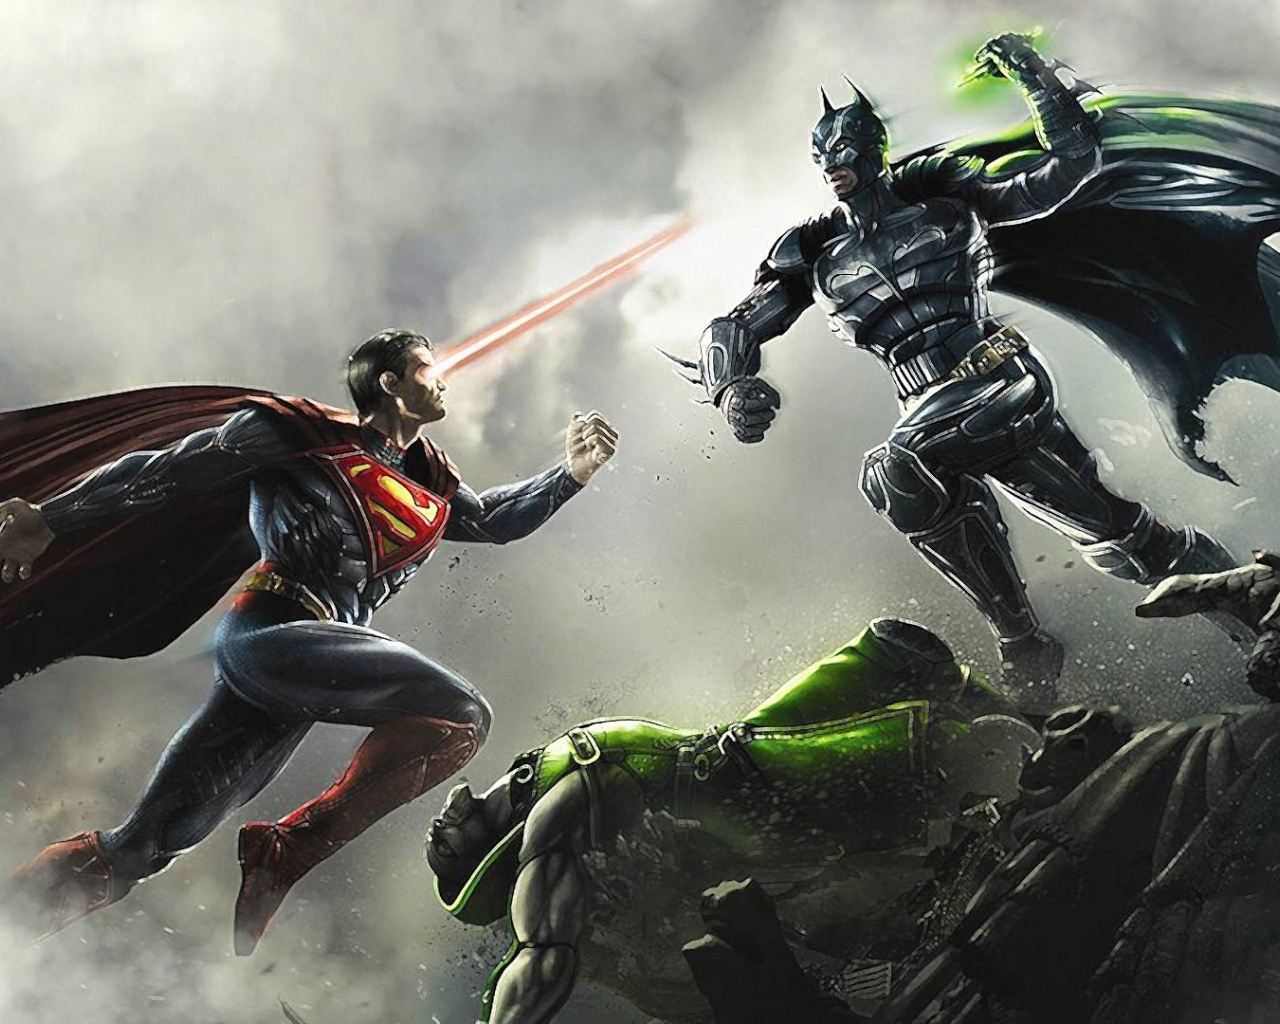 1280x1024 Batman vs Superman desktop PC and Mac wallpaper 1280x1024